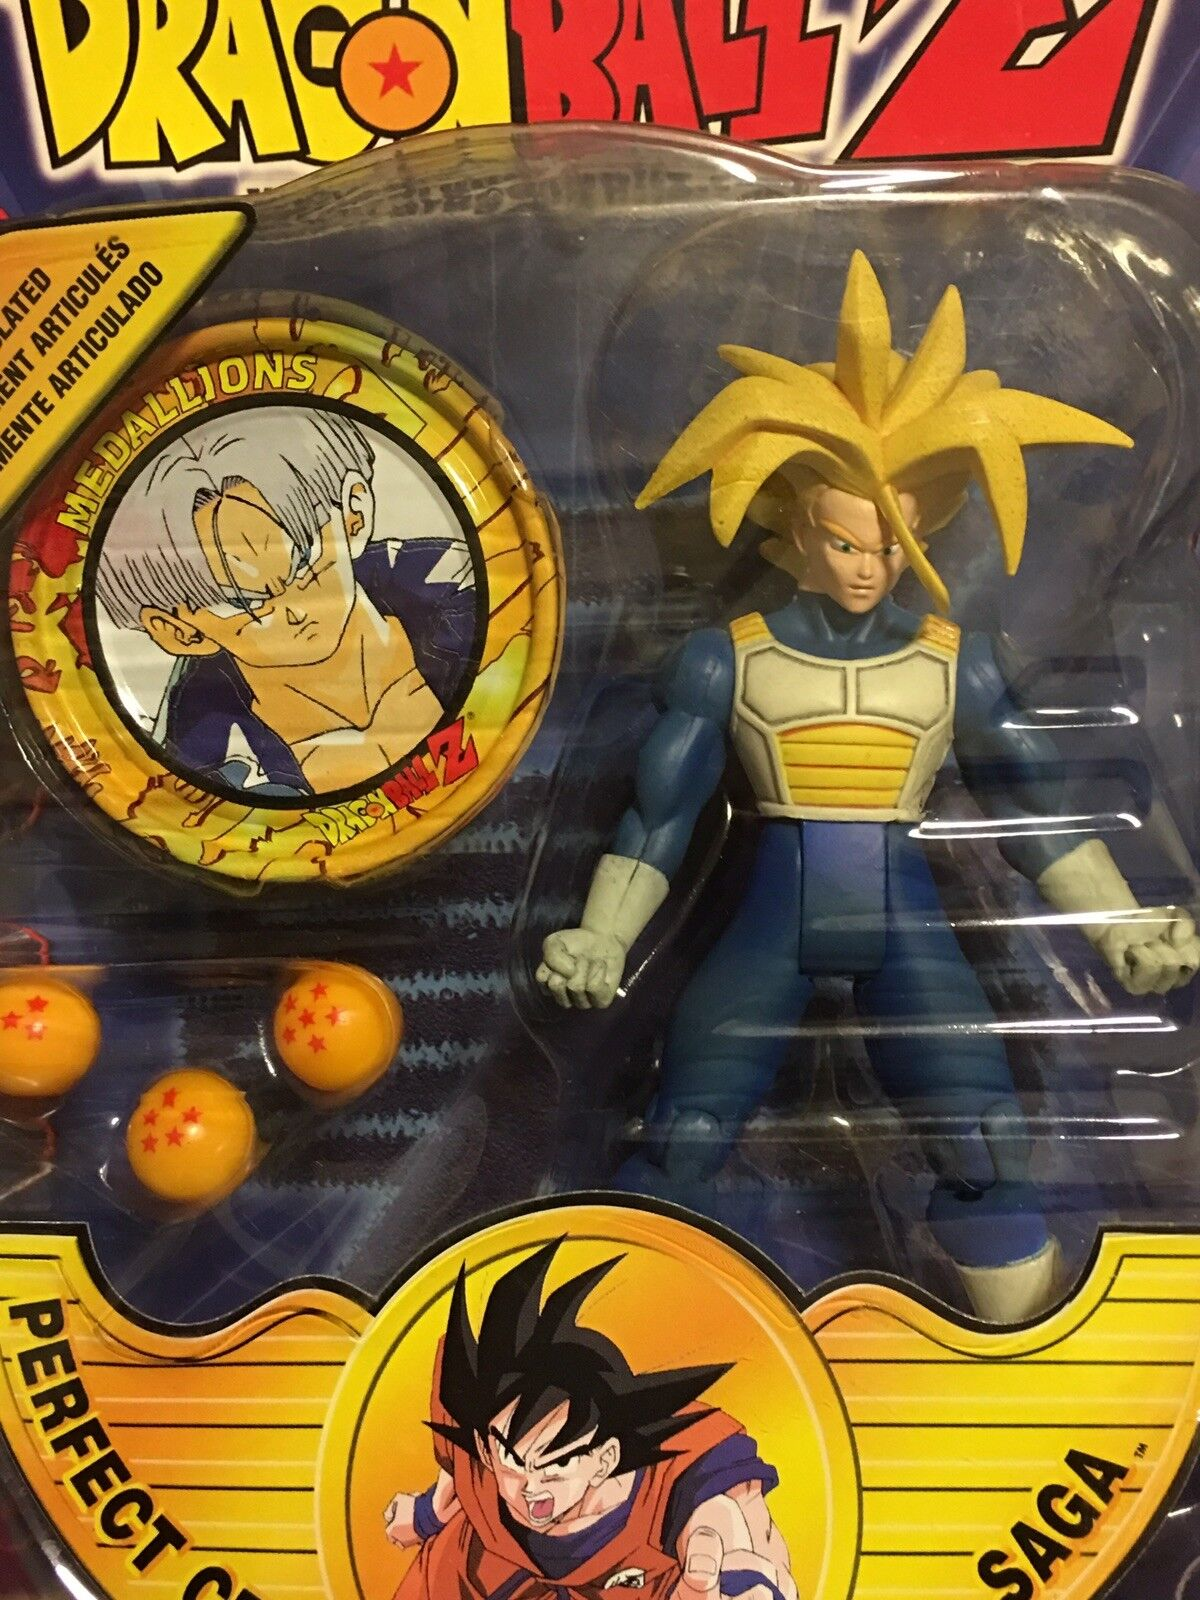 Rare New Irwin 2001 Dragonball Z Trunks Figure Toy with future Trunks Medallion